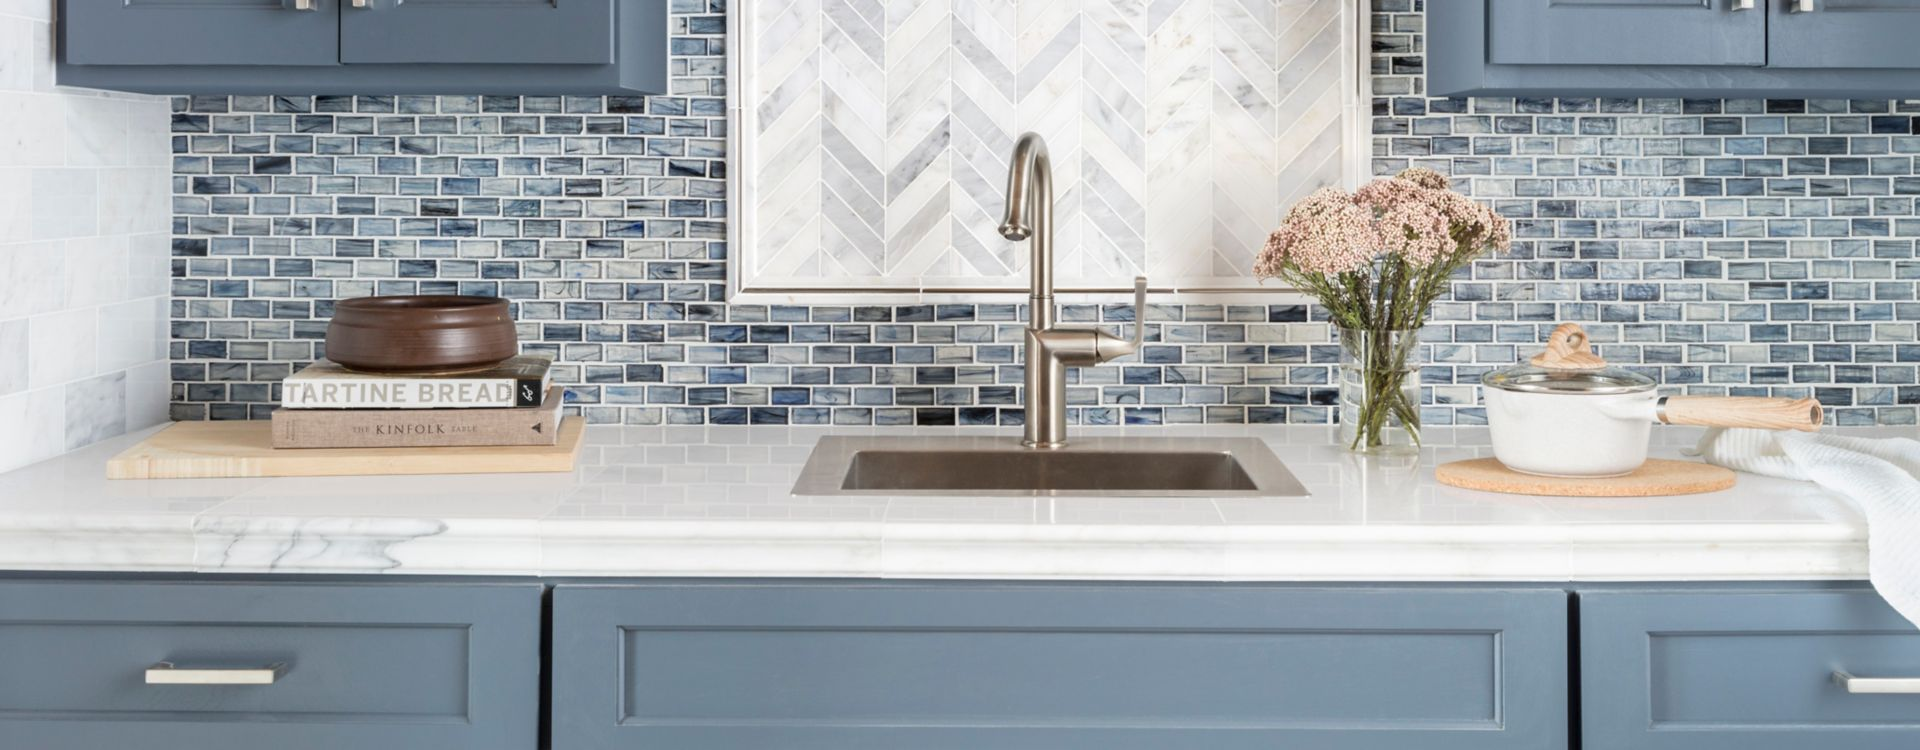 - Tile Trim & Edging Designs, Trends & Ideas For 2019 – The Tile Shop